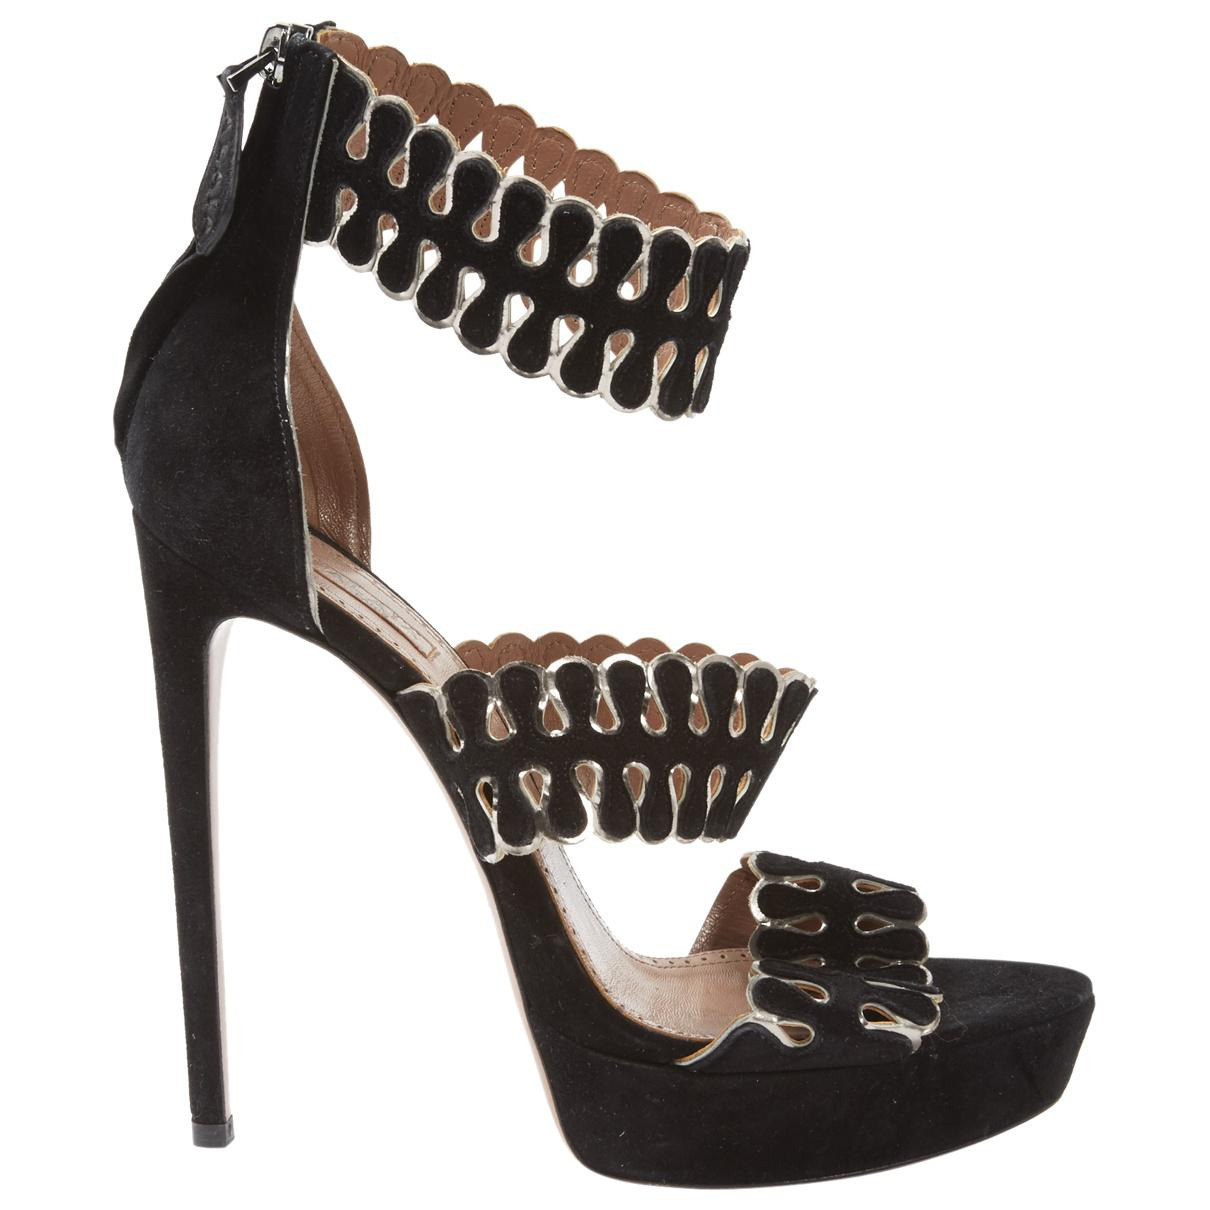 Pre-owned - Sandals Alaia NFCb7Ei6